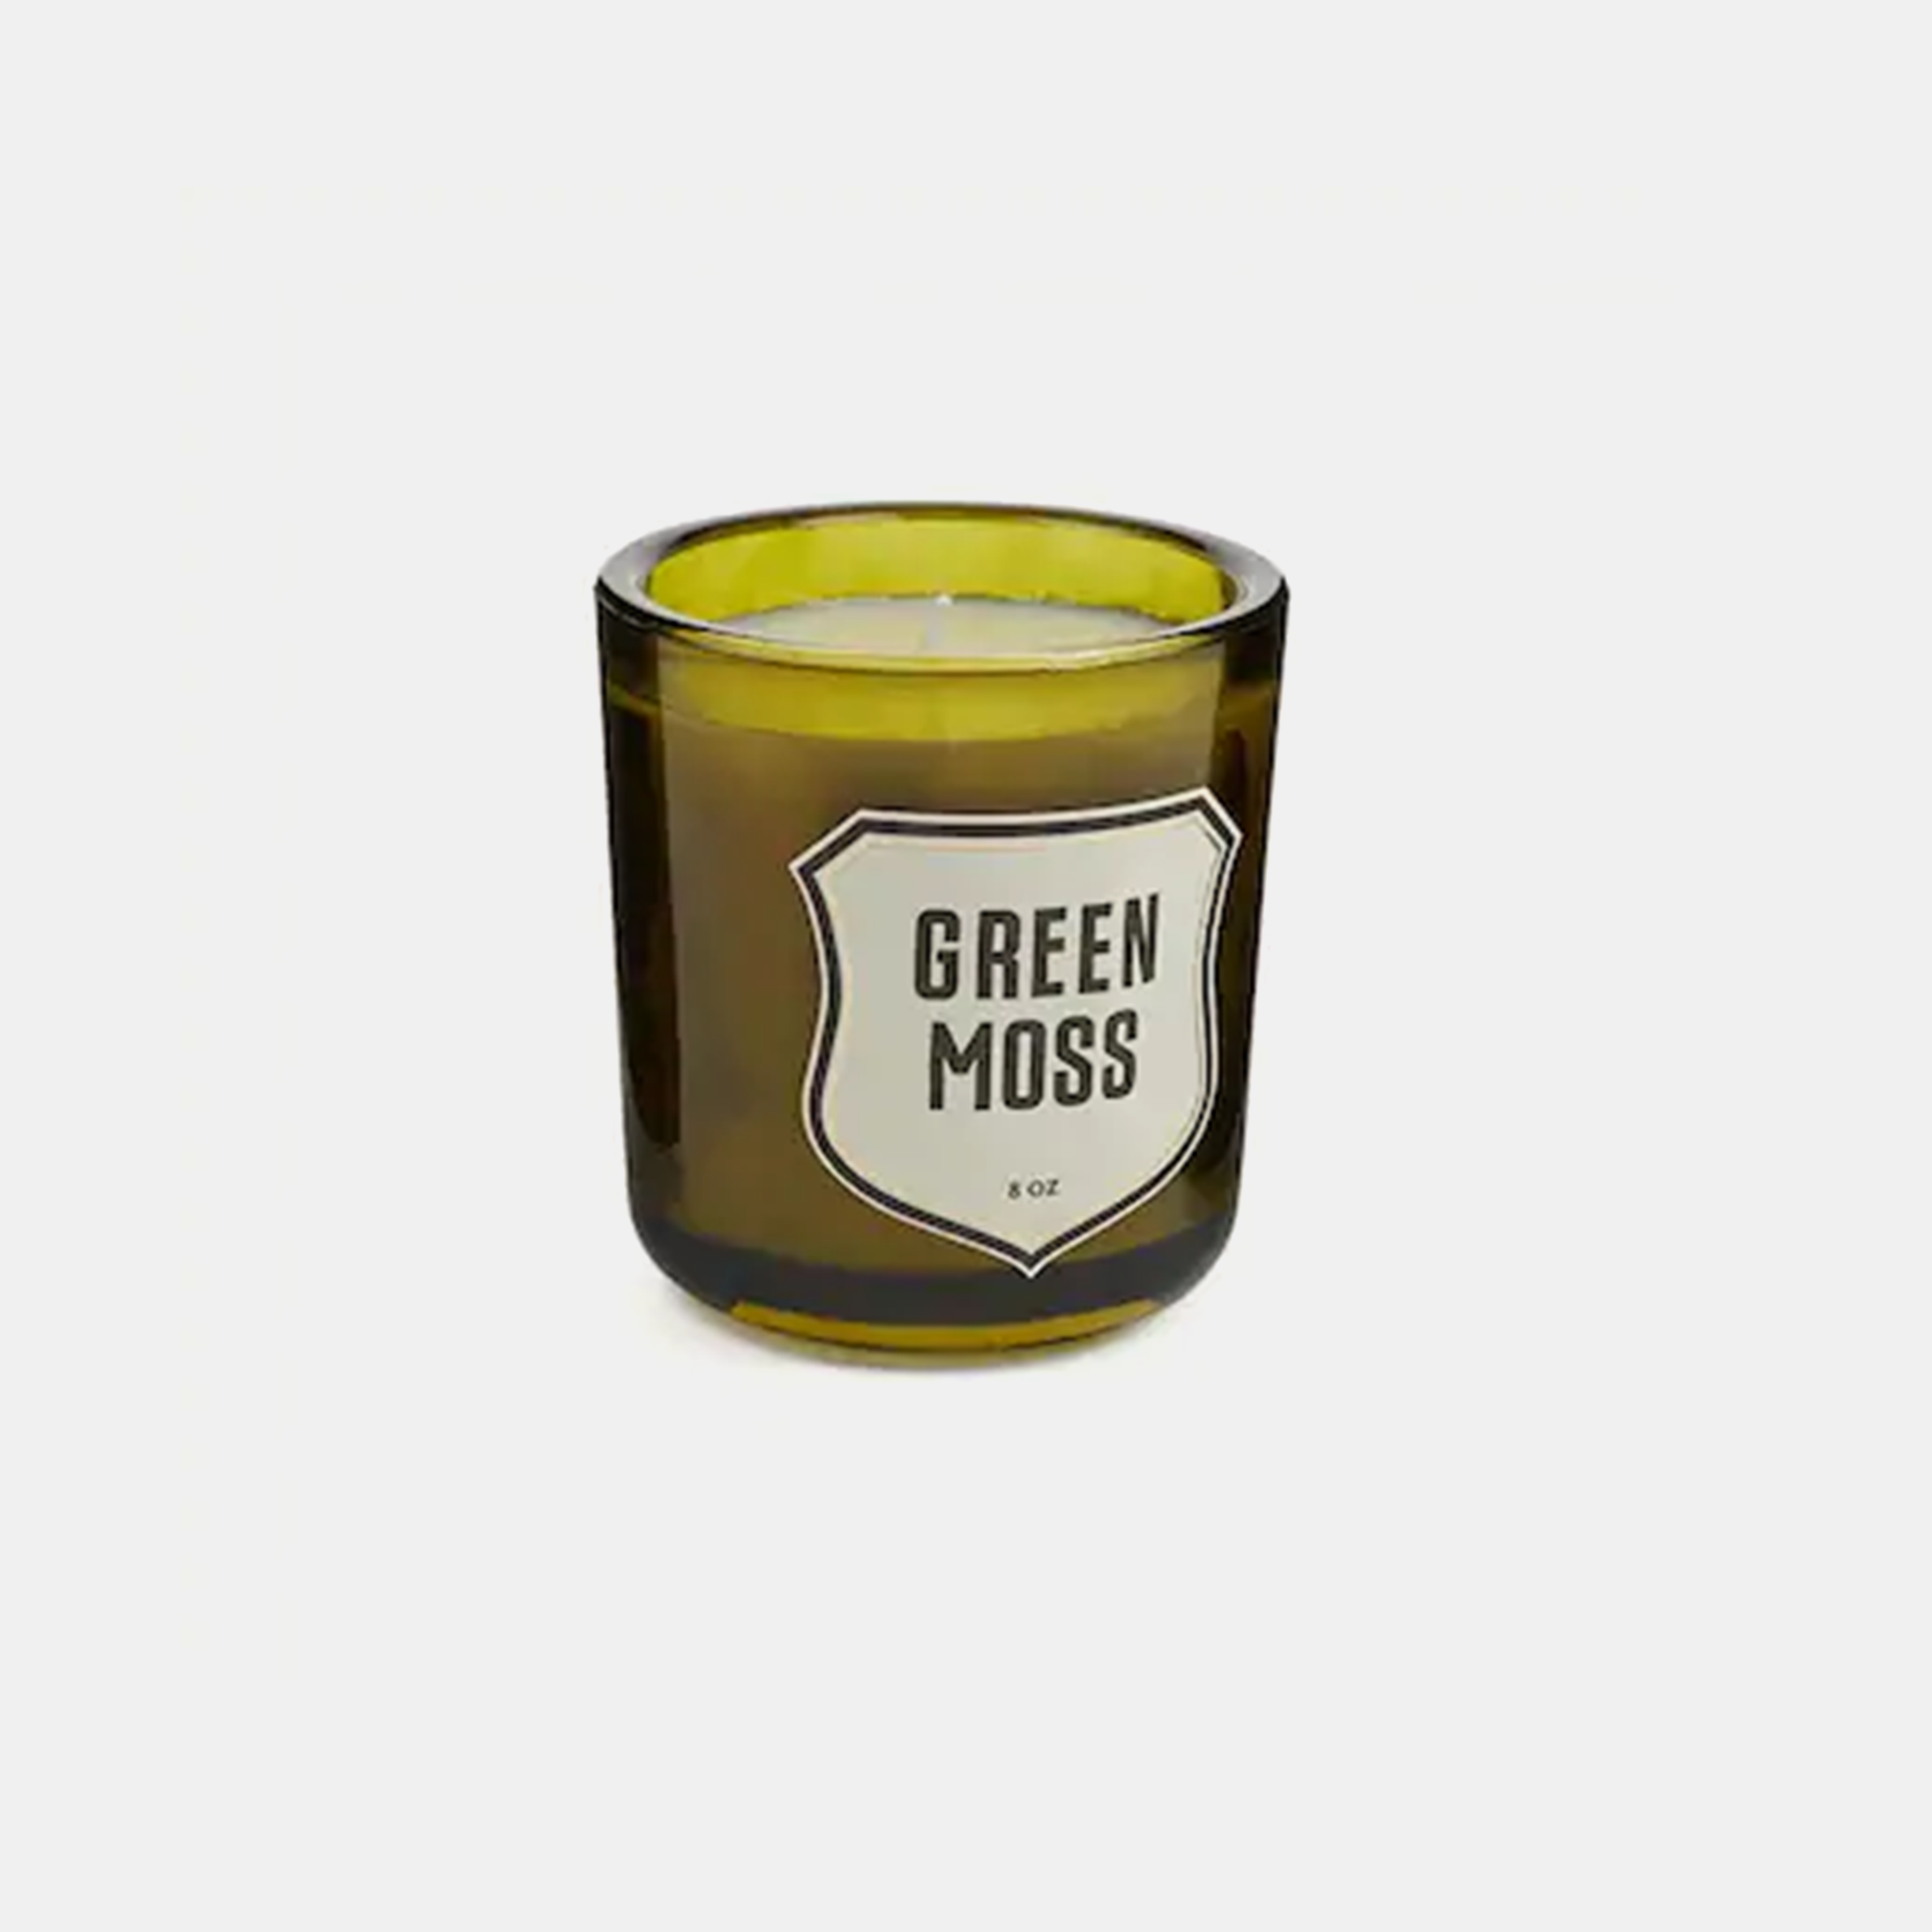 Green Moss Candle  Hand poured from soy wax into recycled glass containers. Over 60 hours of burn time. Made in USA. SKU9362IZA